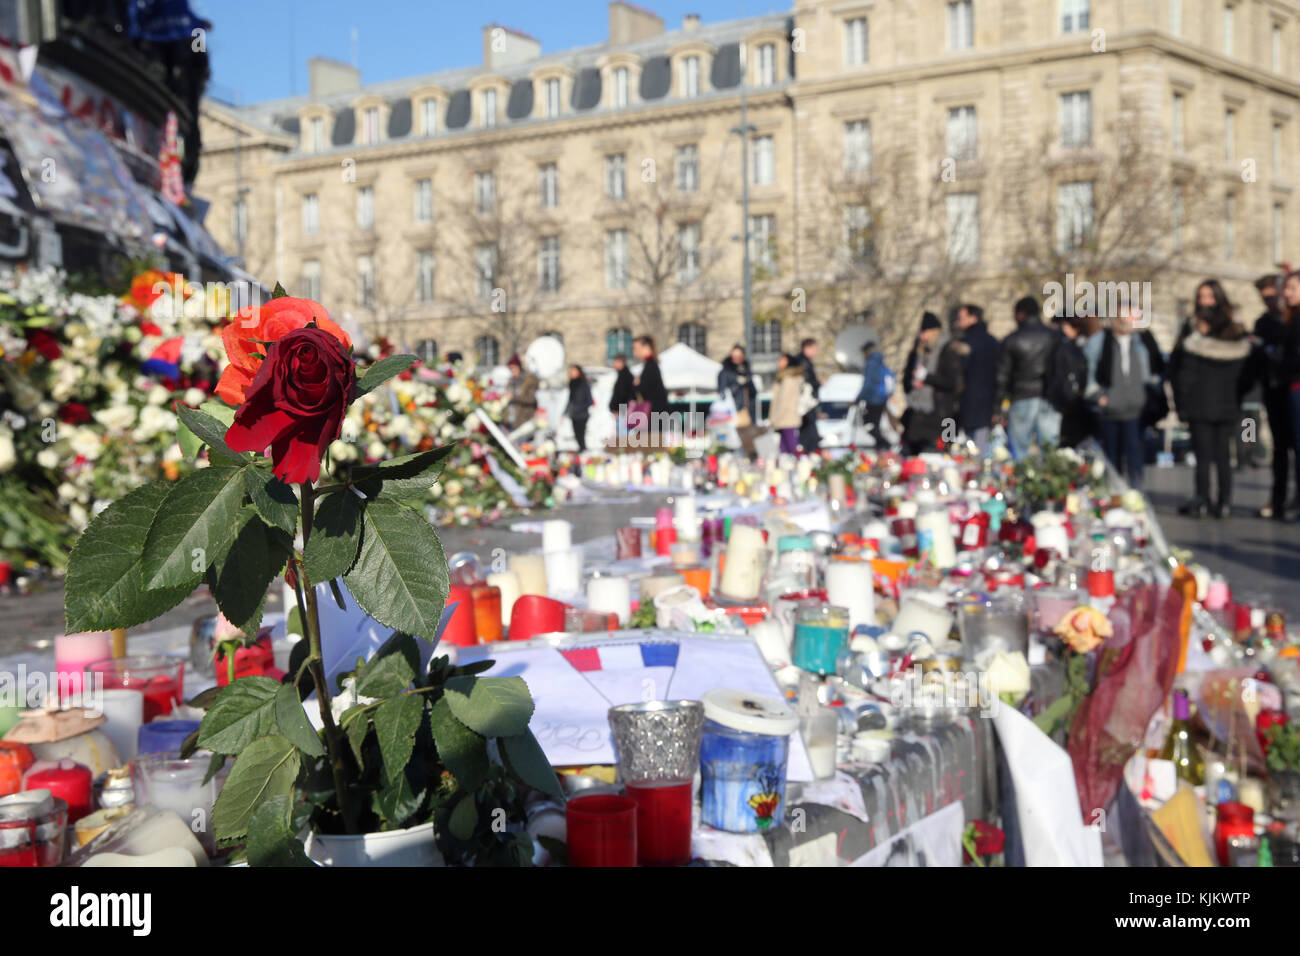 National tribute for the victims of the Paris terrorist attacks. Islamic State (ISIS) jihadists claimed coordinated - Stock Image